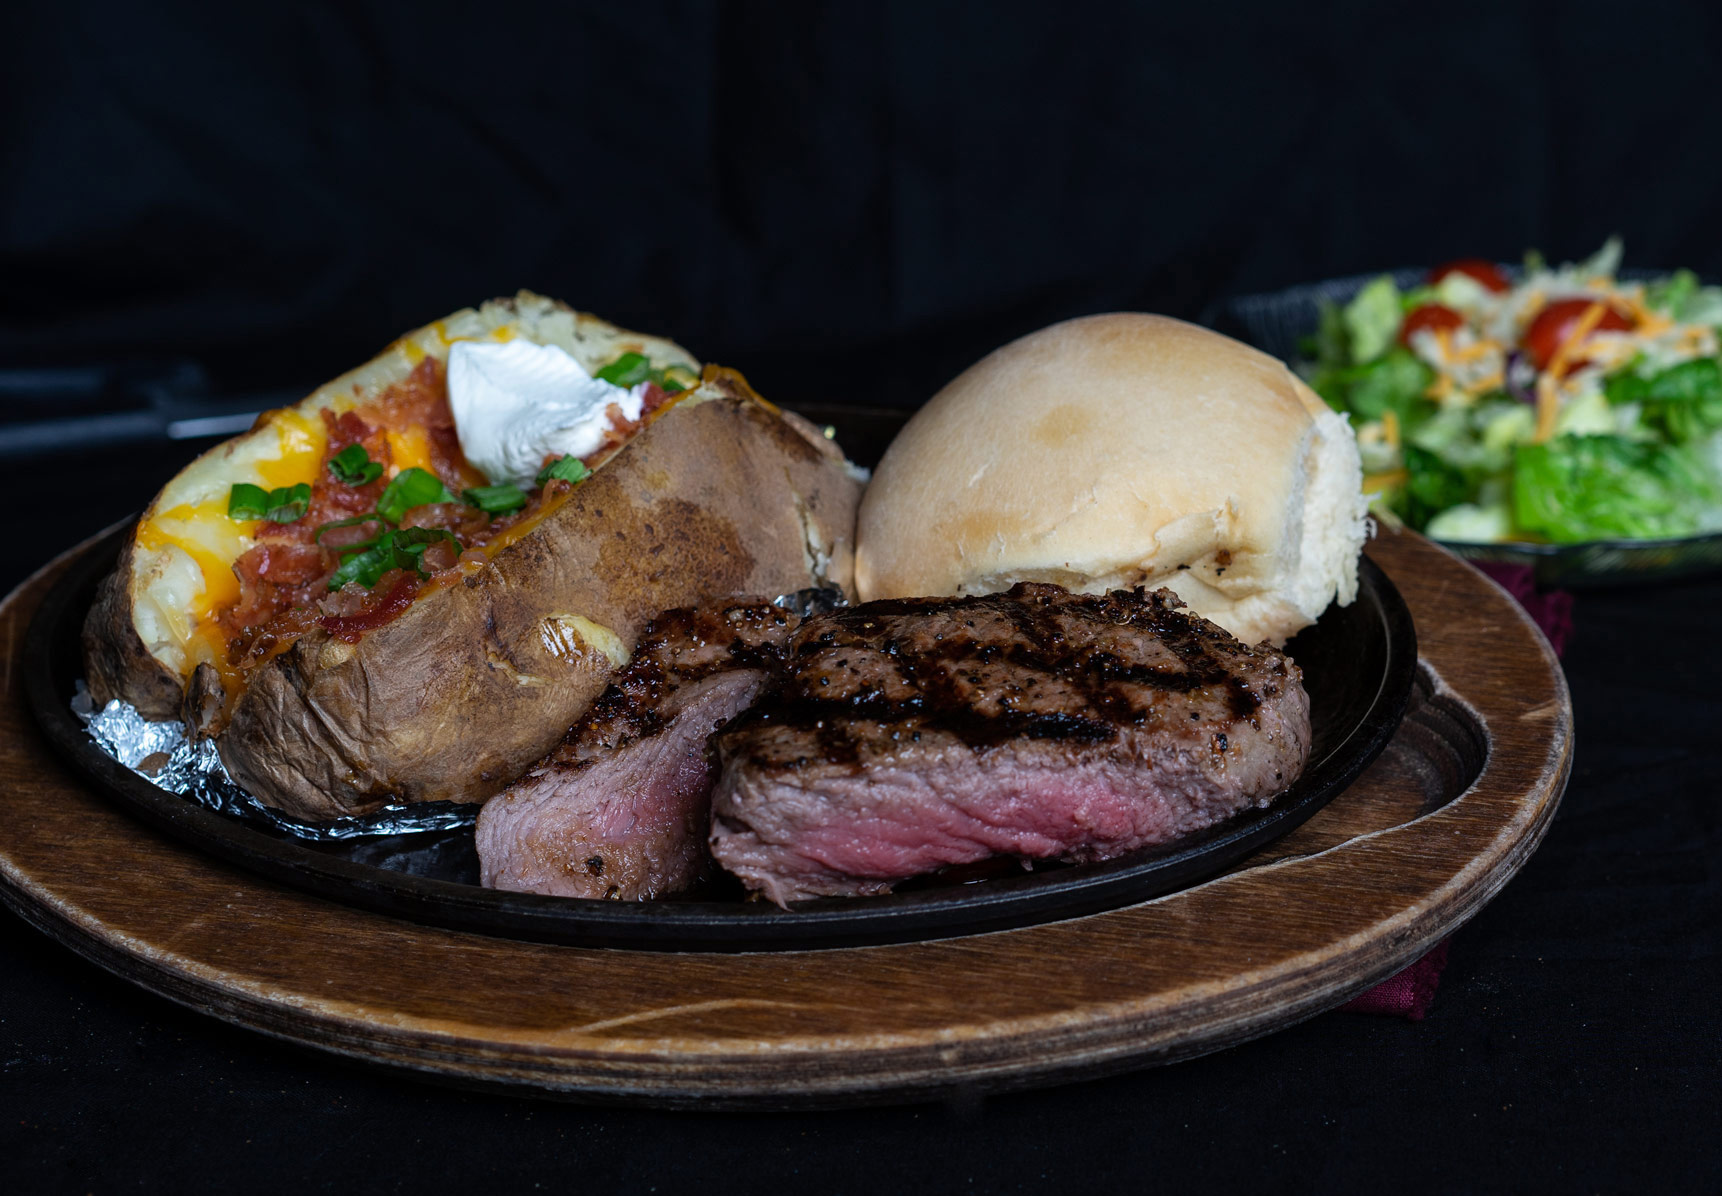 Top Sirloin Steak An eight ounce serving of naturally lean  1855 Certified Black Angus Beef  carved from the center of the sirloin to give it a bold, beefy flavor. Accompanied with baked potato, house prepared yeast roll and salad bar. 17.00